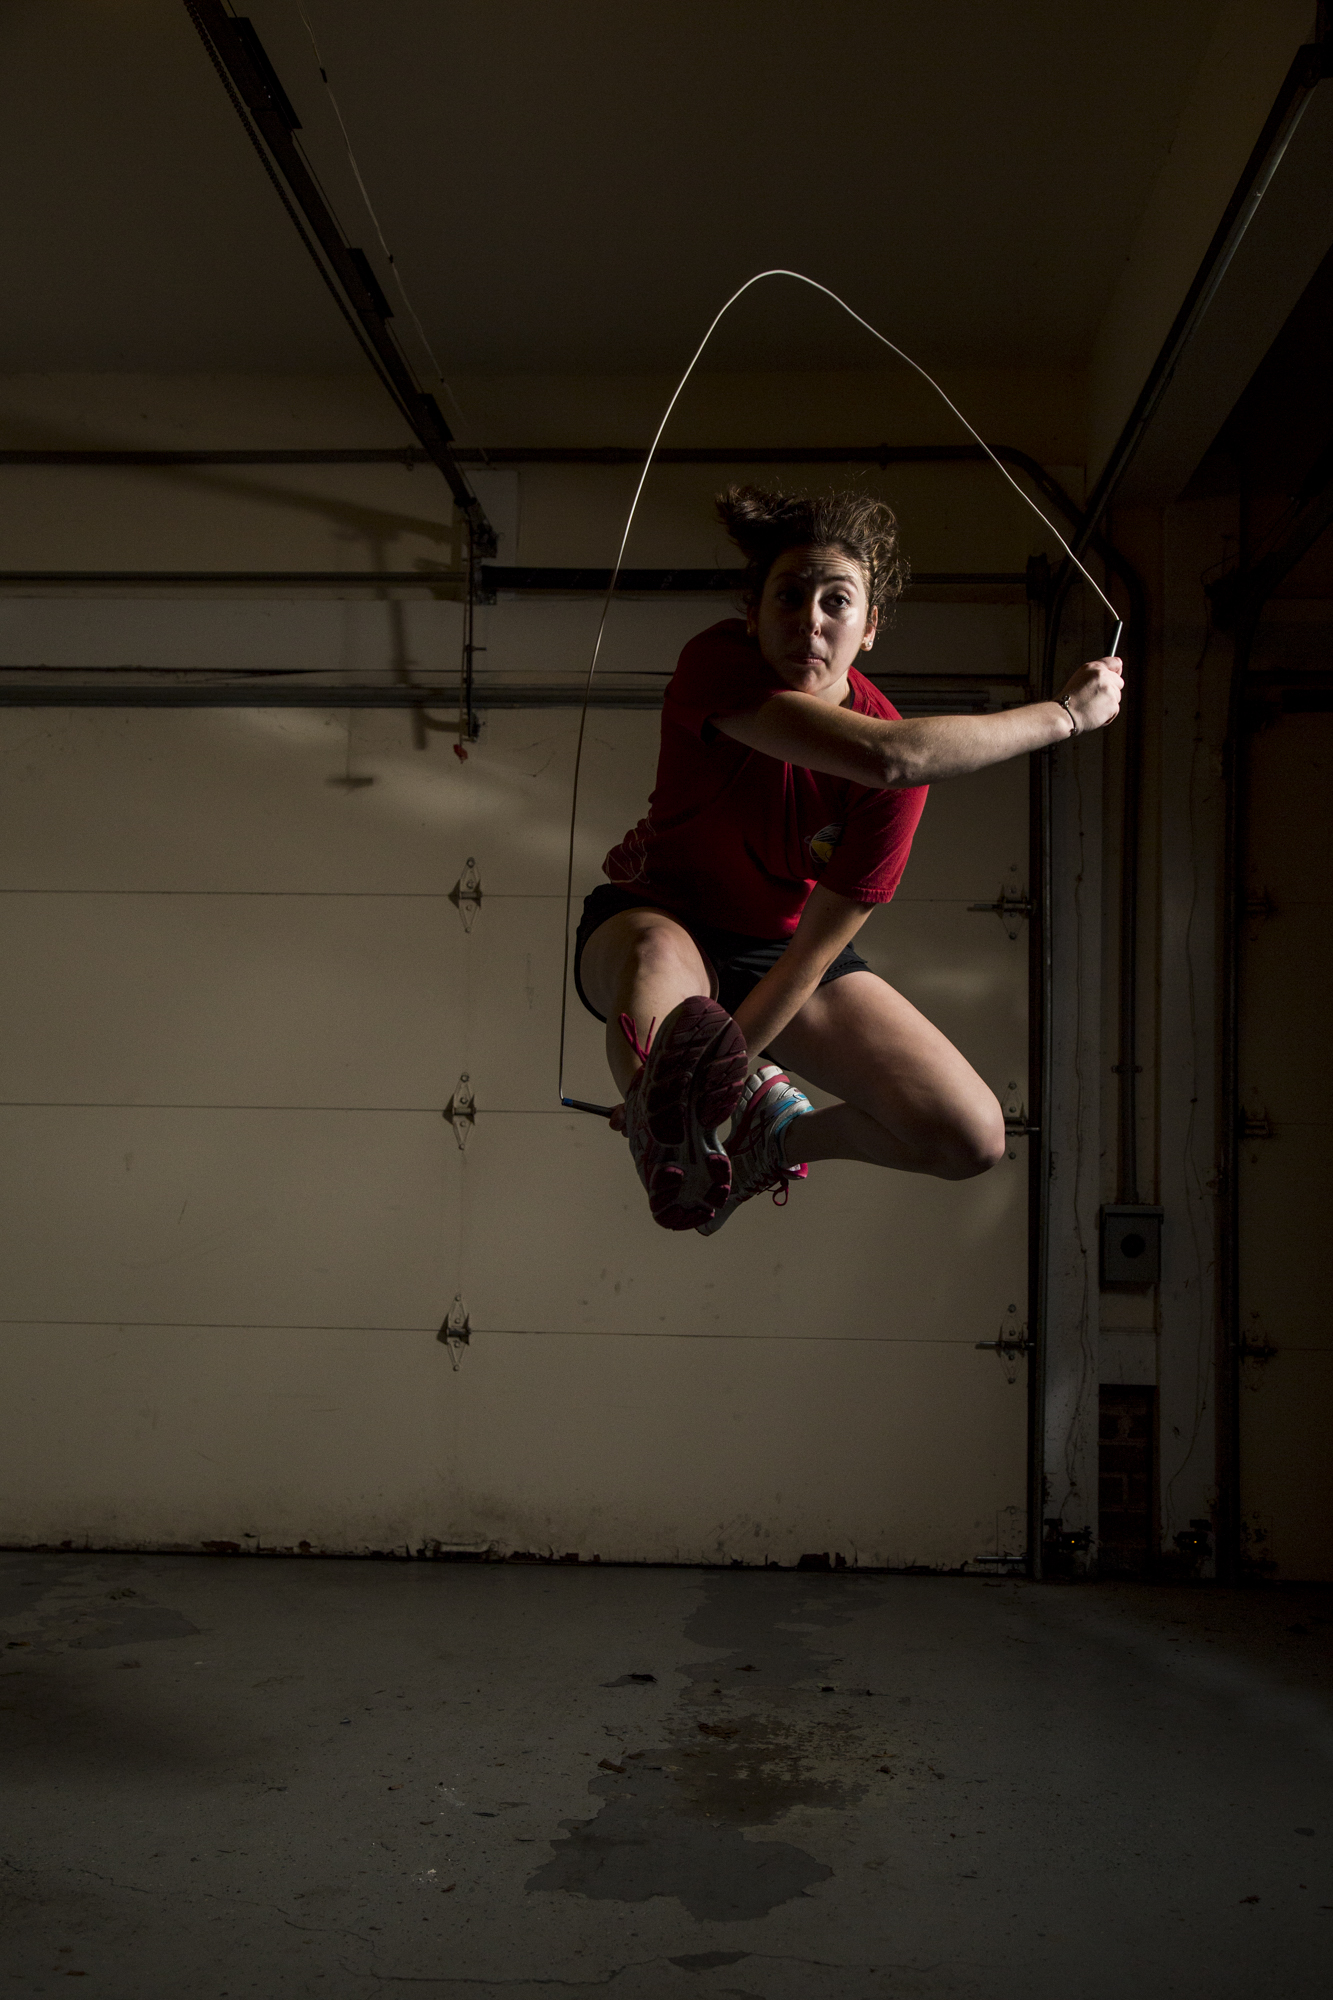 Rebeccah Musson, a senior at East Chapel Hill High School and a jumper in the Bouncing Bulldogs, jumps rope in her garage in Chapel Hill, N.C., on Oct. 17, 2016.   Hear her talk about jump-roping below: